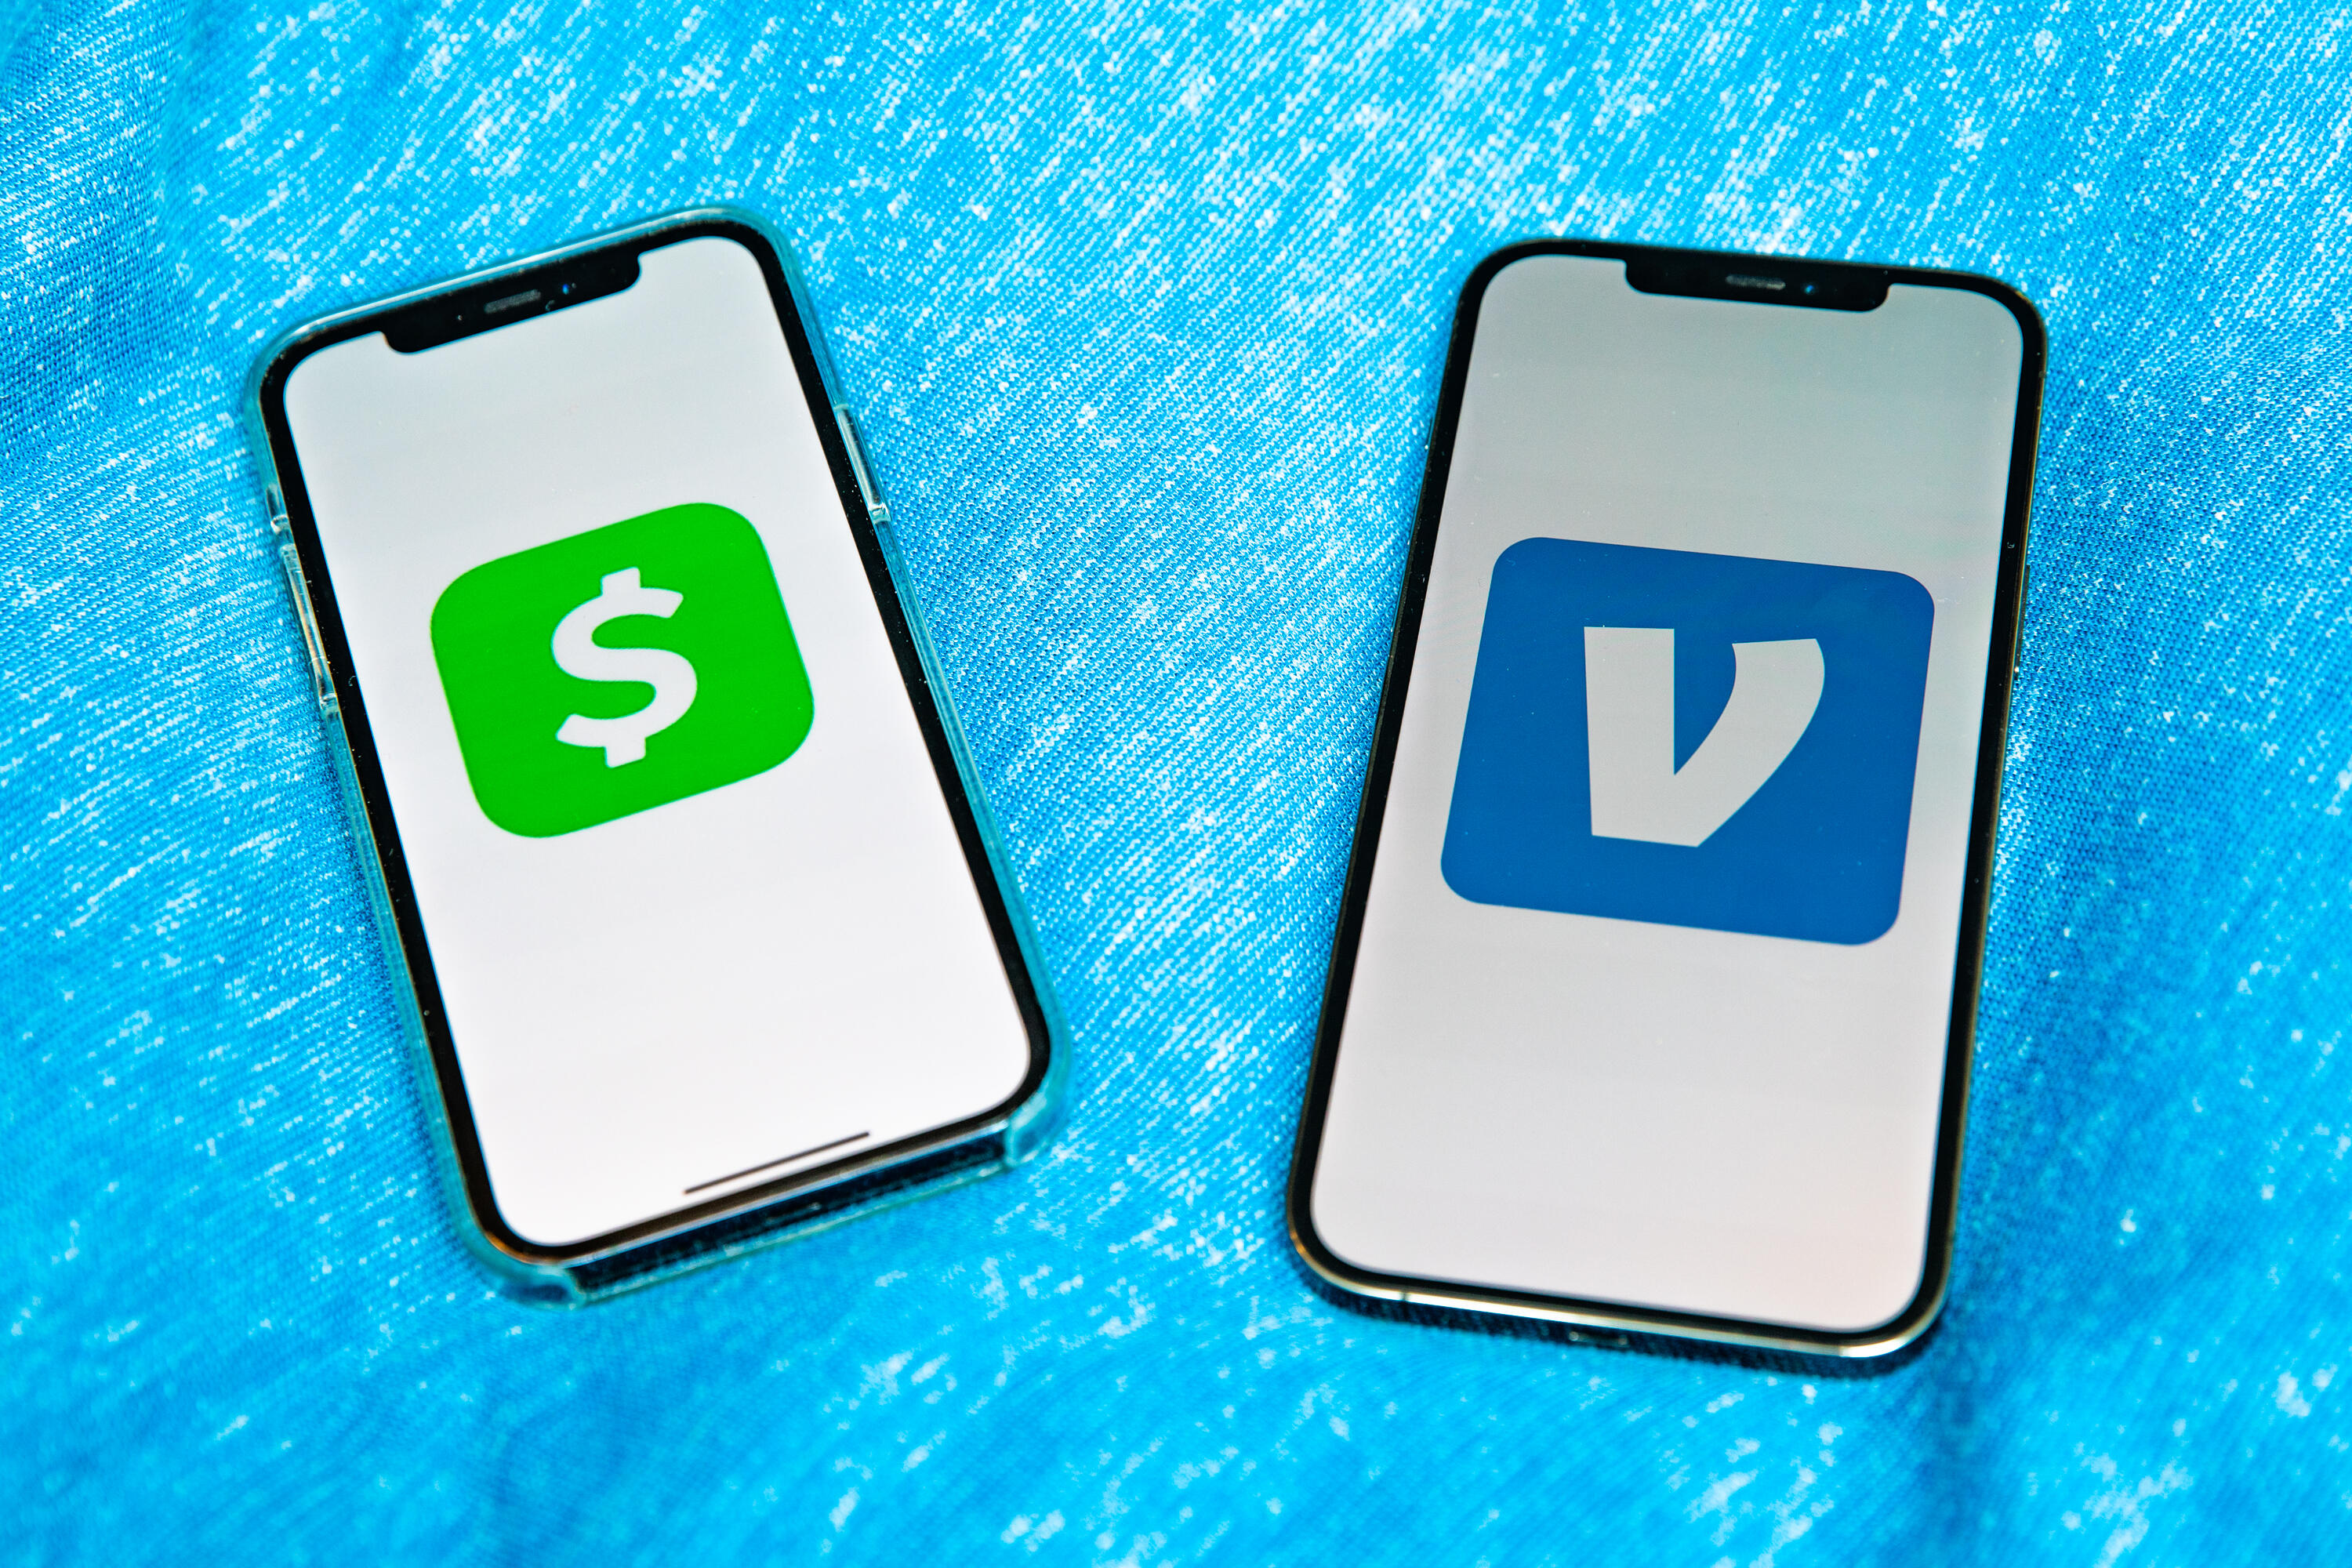 Mobile payment app like Venmo and Cash App